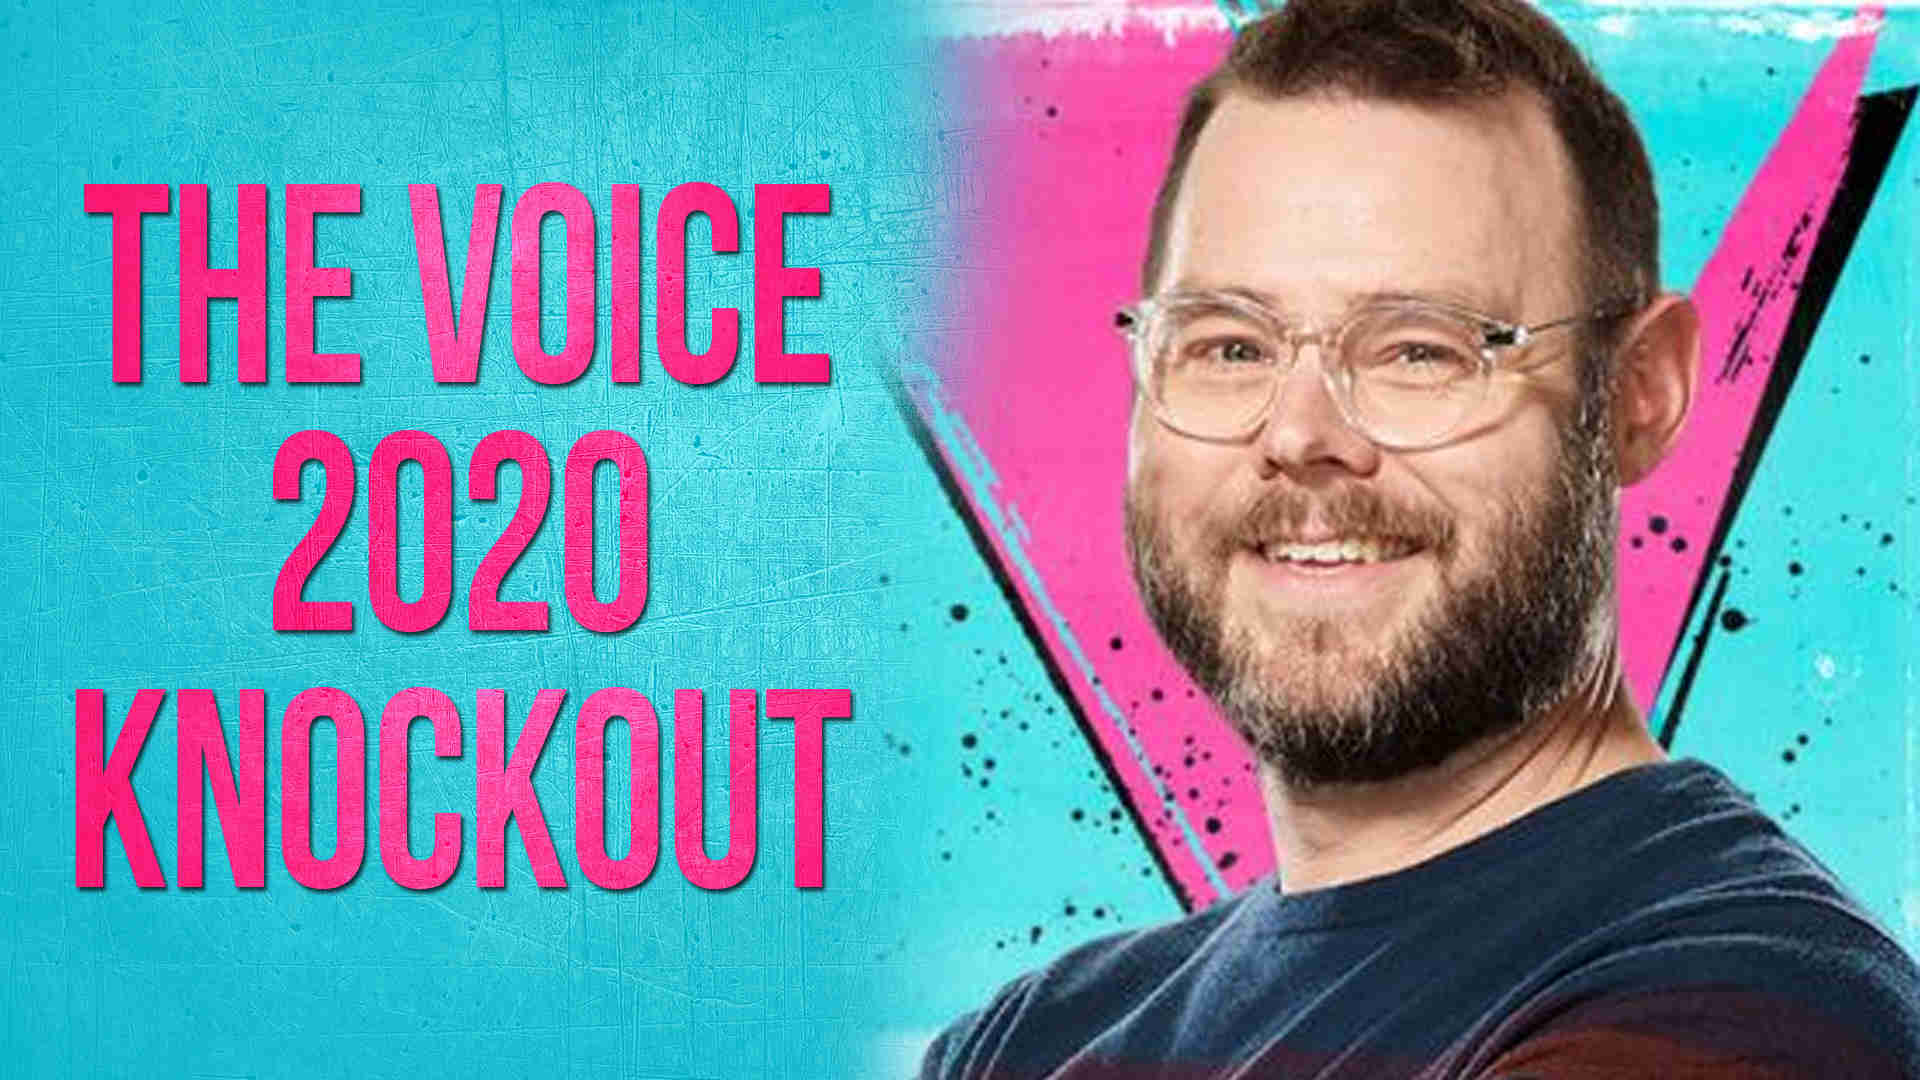 Vote Todd Tilghman The Voice USA 2020 Knockout Performance Tonight on 13 April 2020